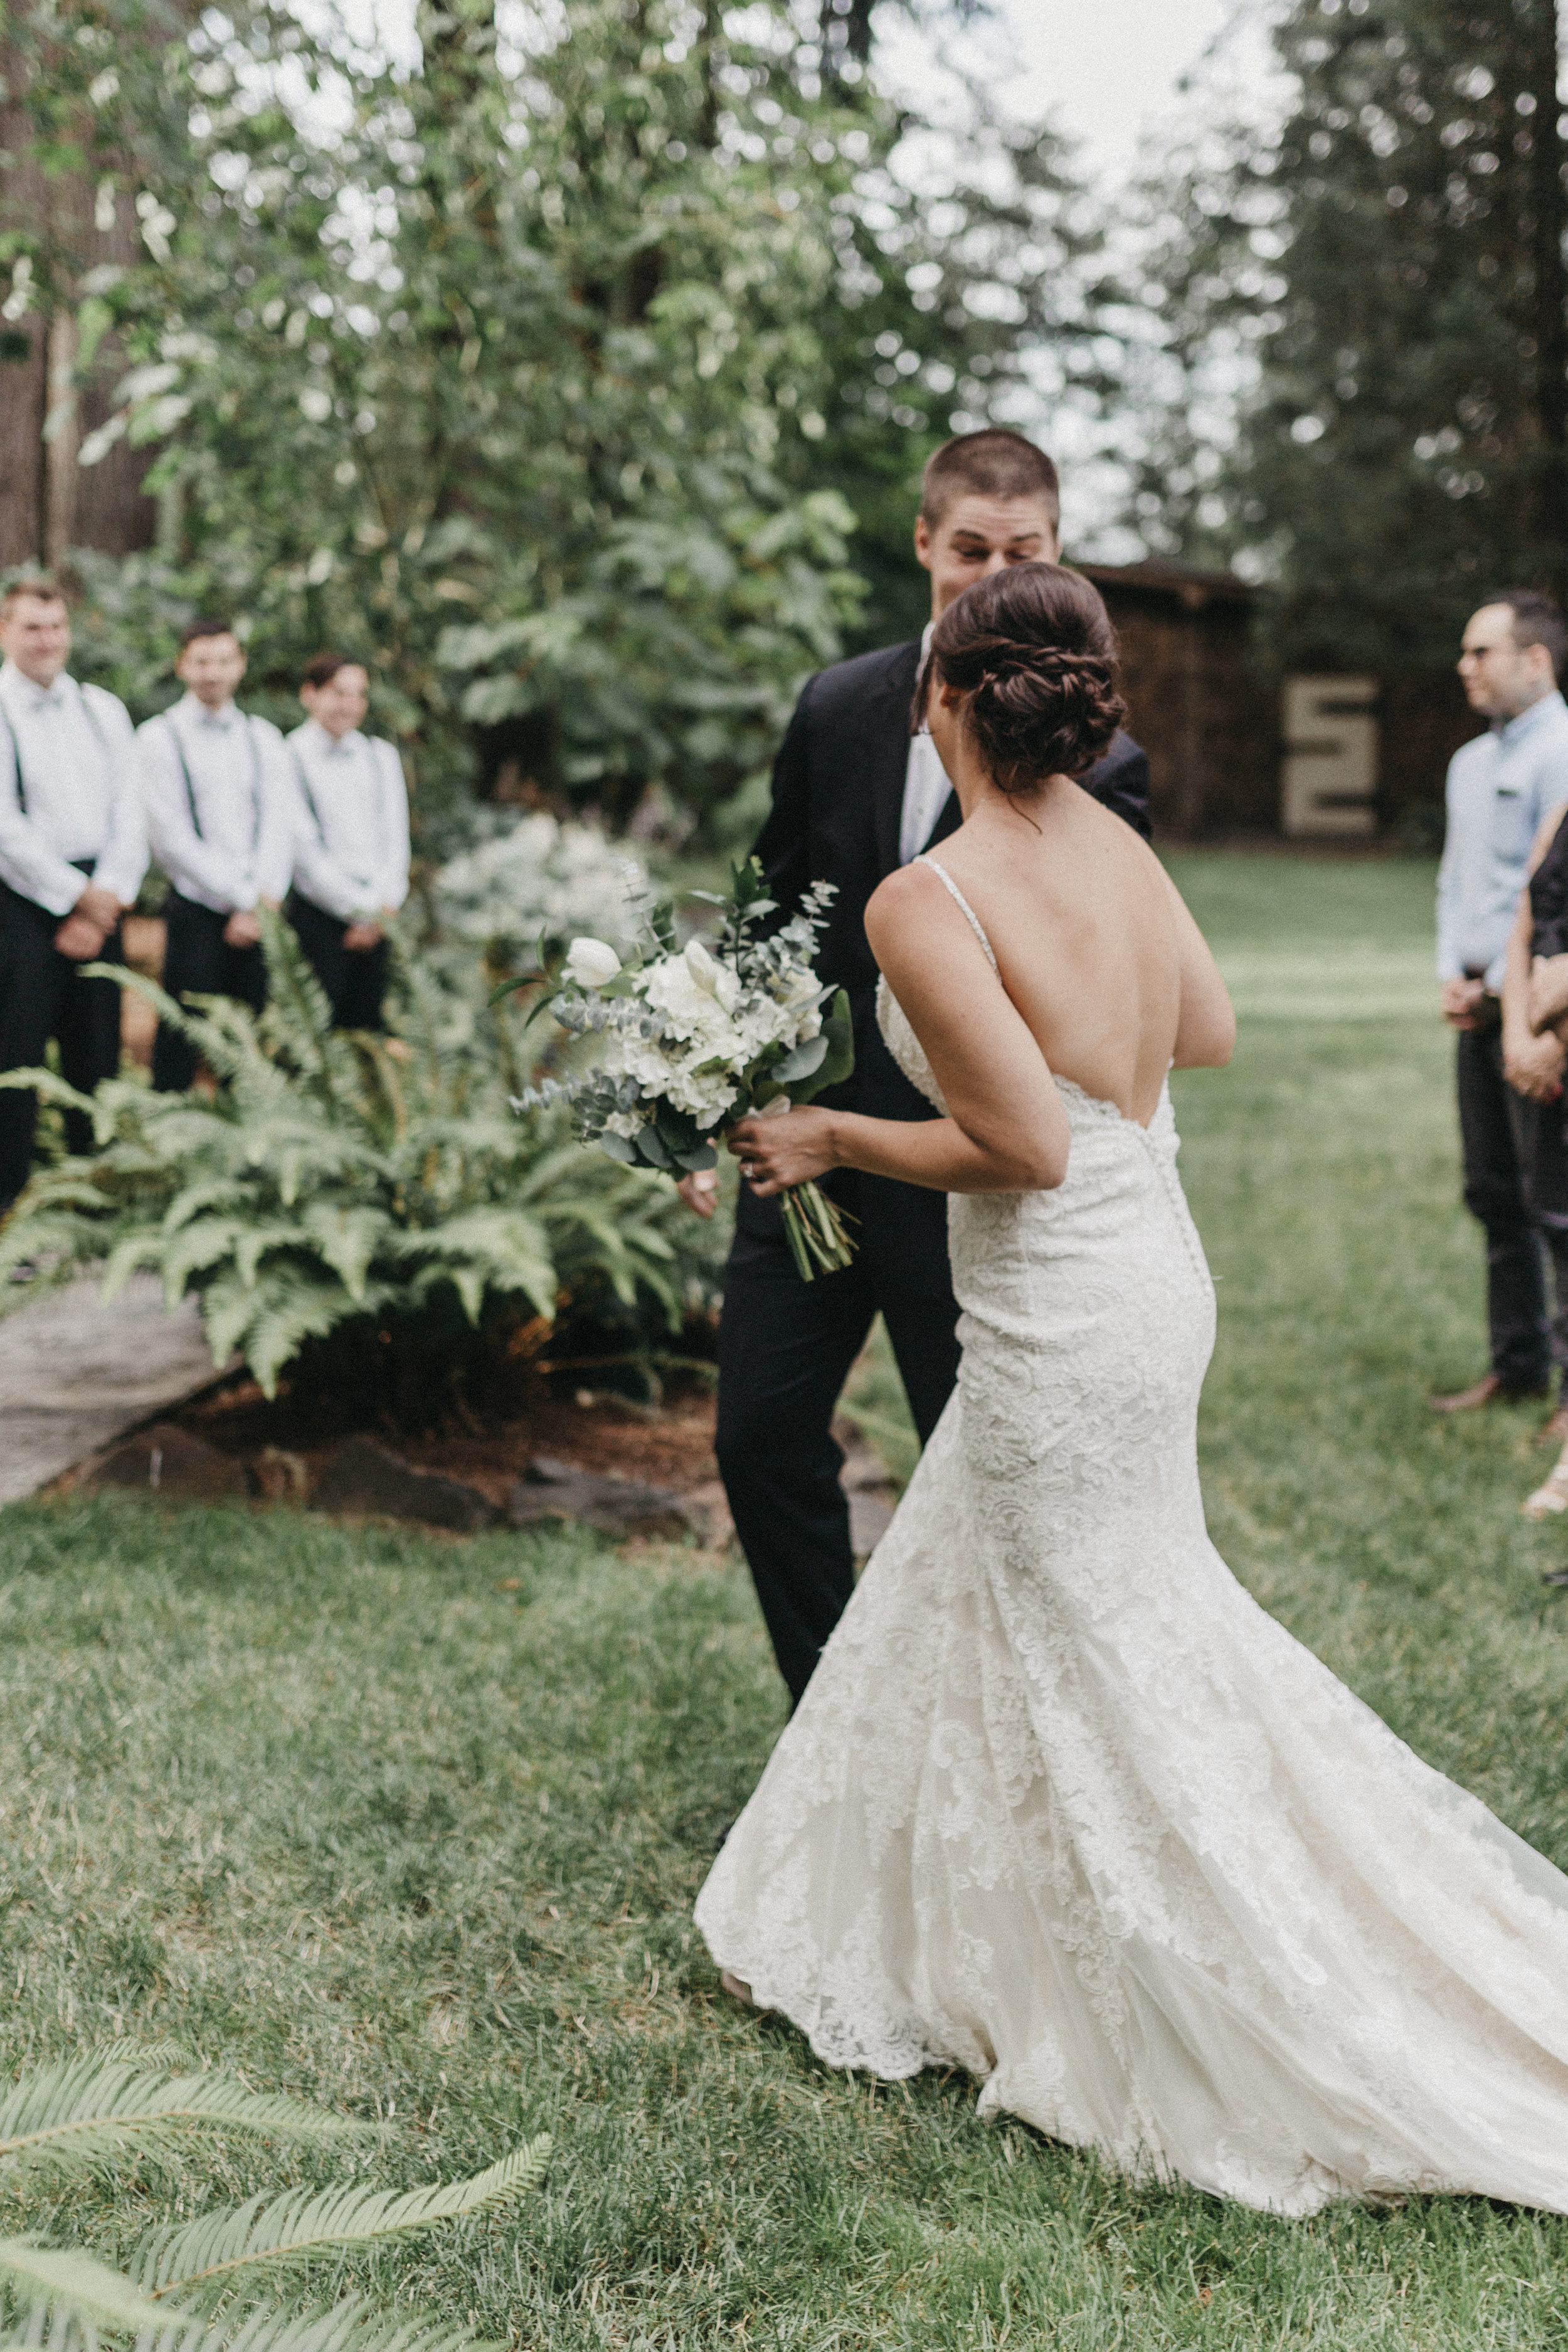 Shaynah Vandegriffe Photography | Eugene, Oregon wedding photographer | Deep Woods Events Wedding | Oregon Bride | Father of the Bride | Wedding Ceremony | Deep Woods Events | First Look